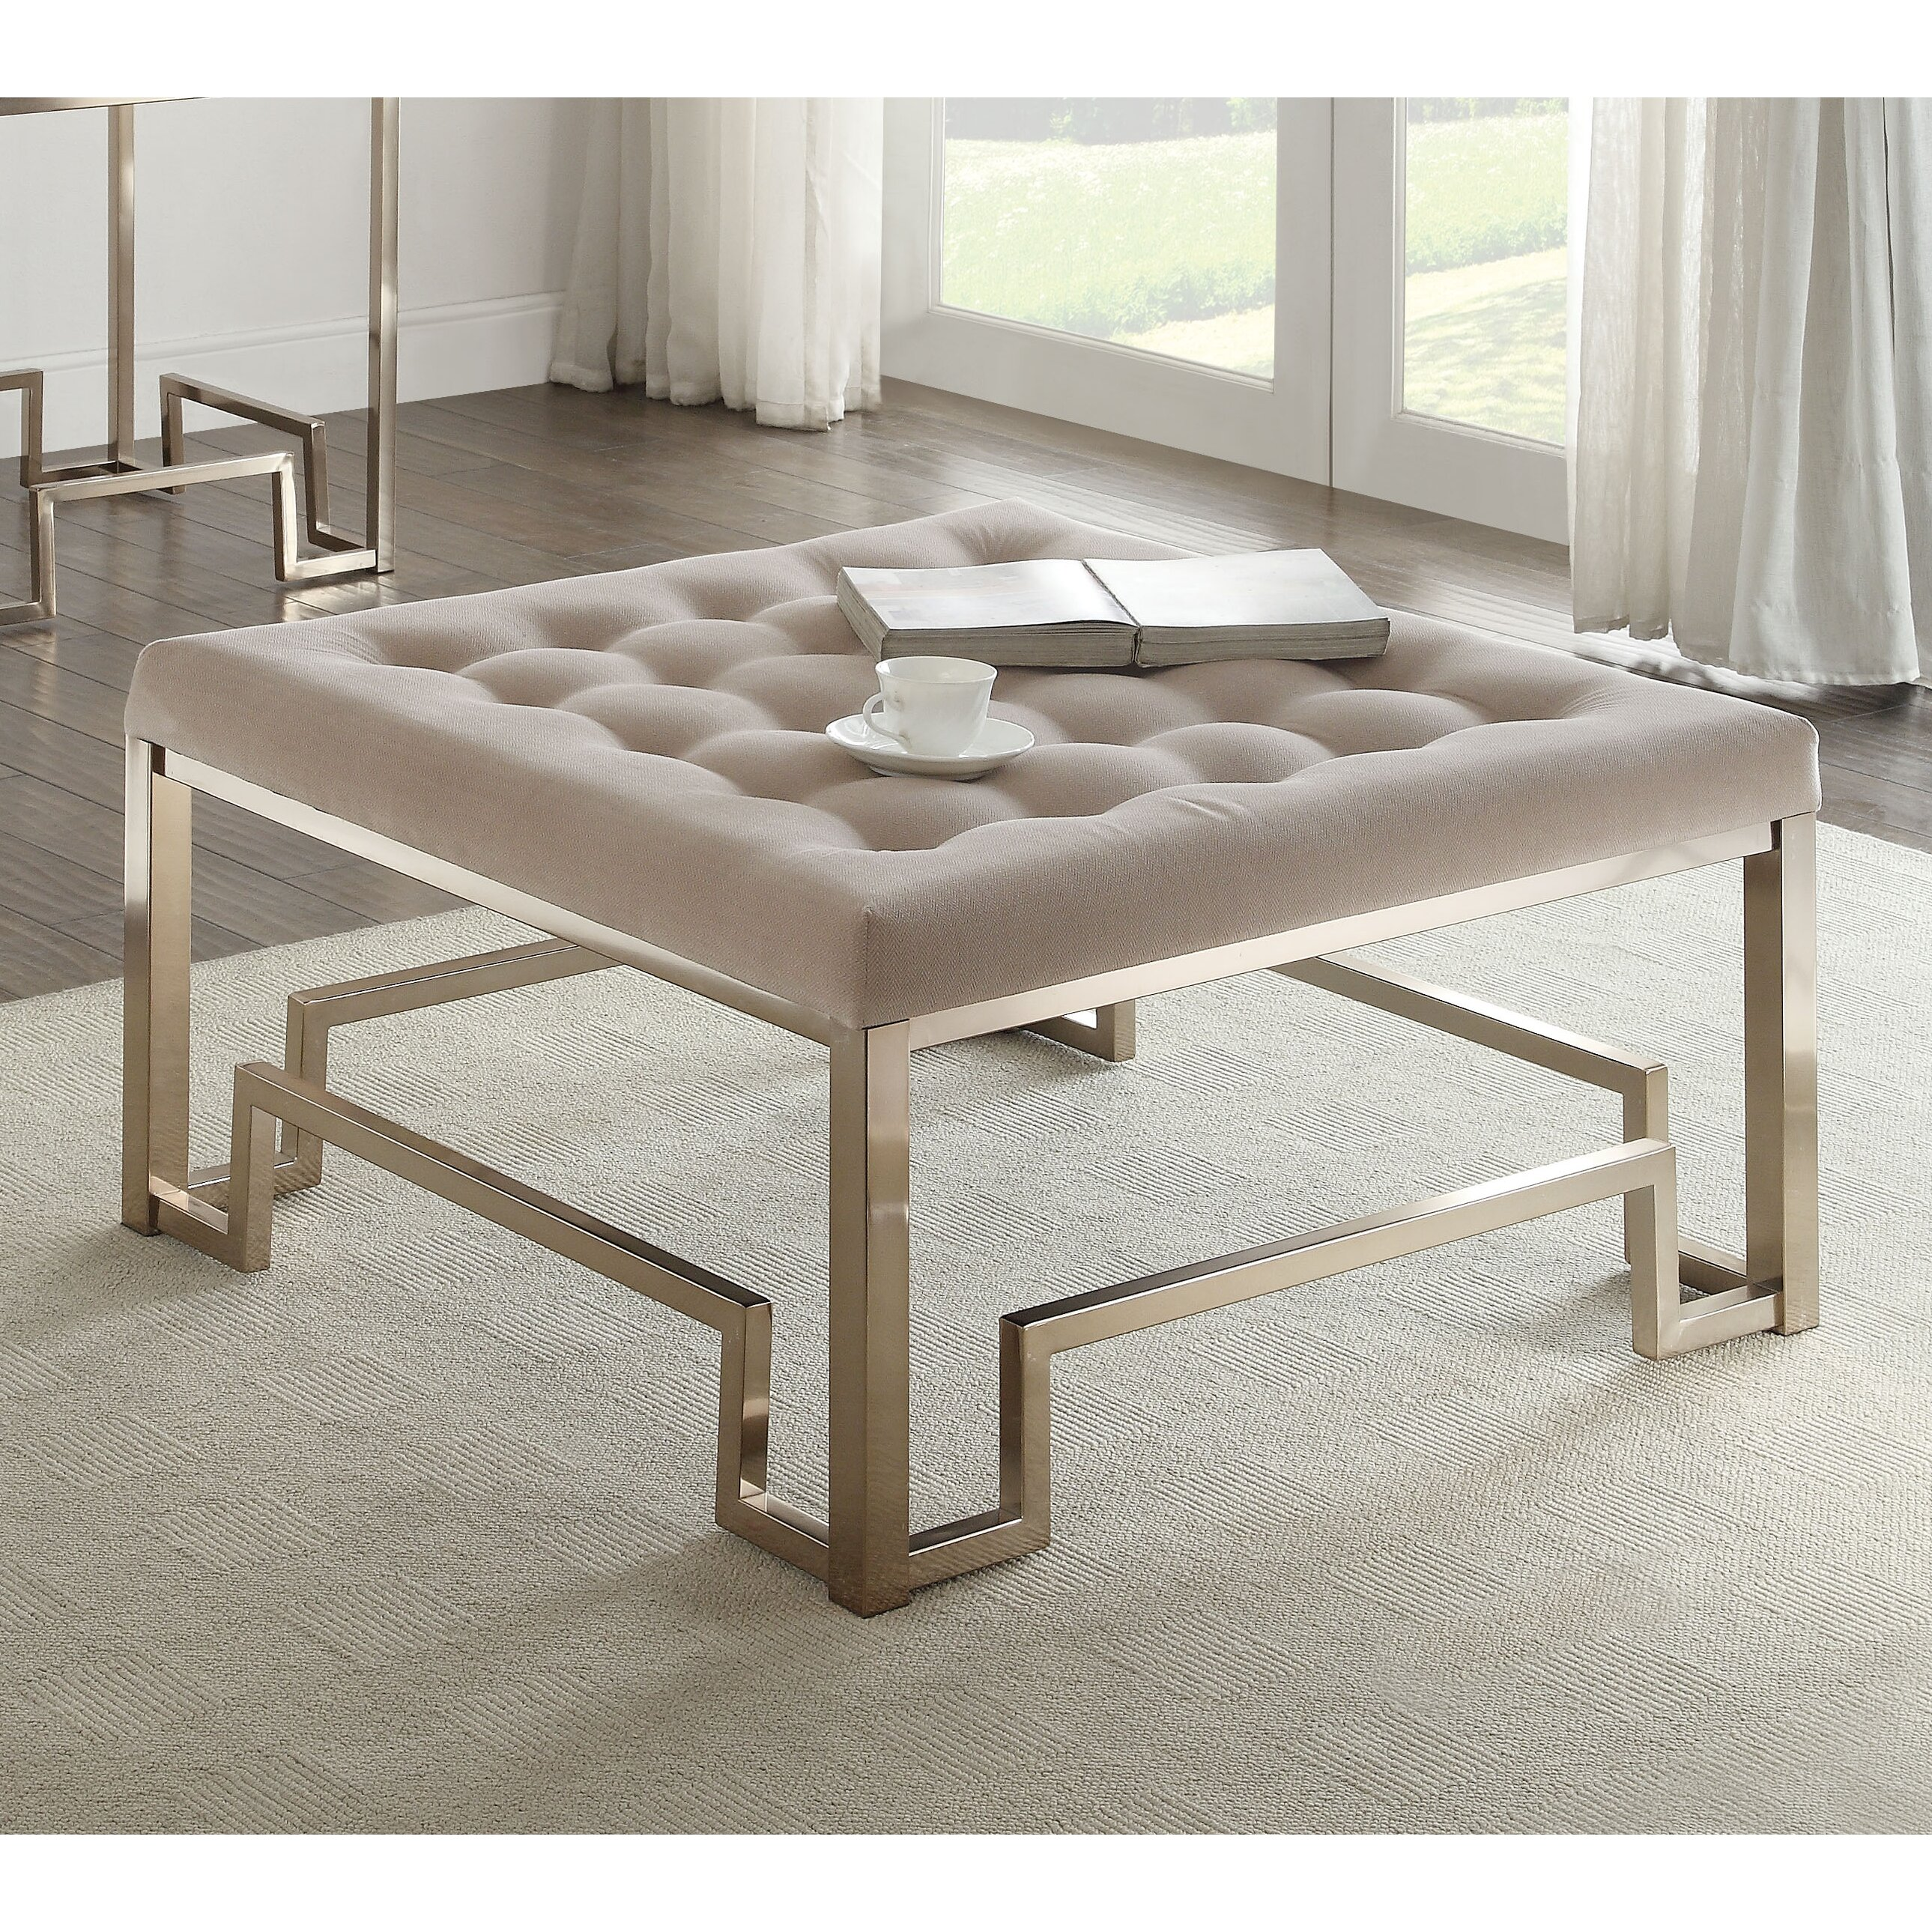 Coffee Table With Fabric: ACME Furniture Damien Fabric Coffee Table & Reviews